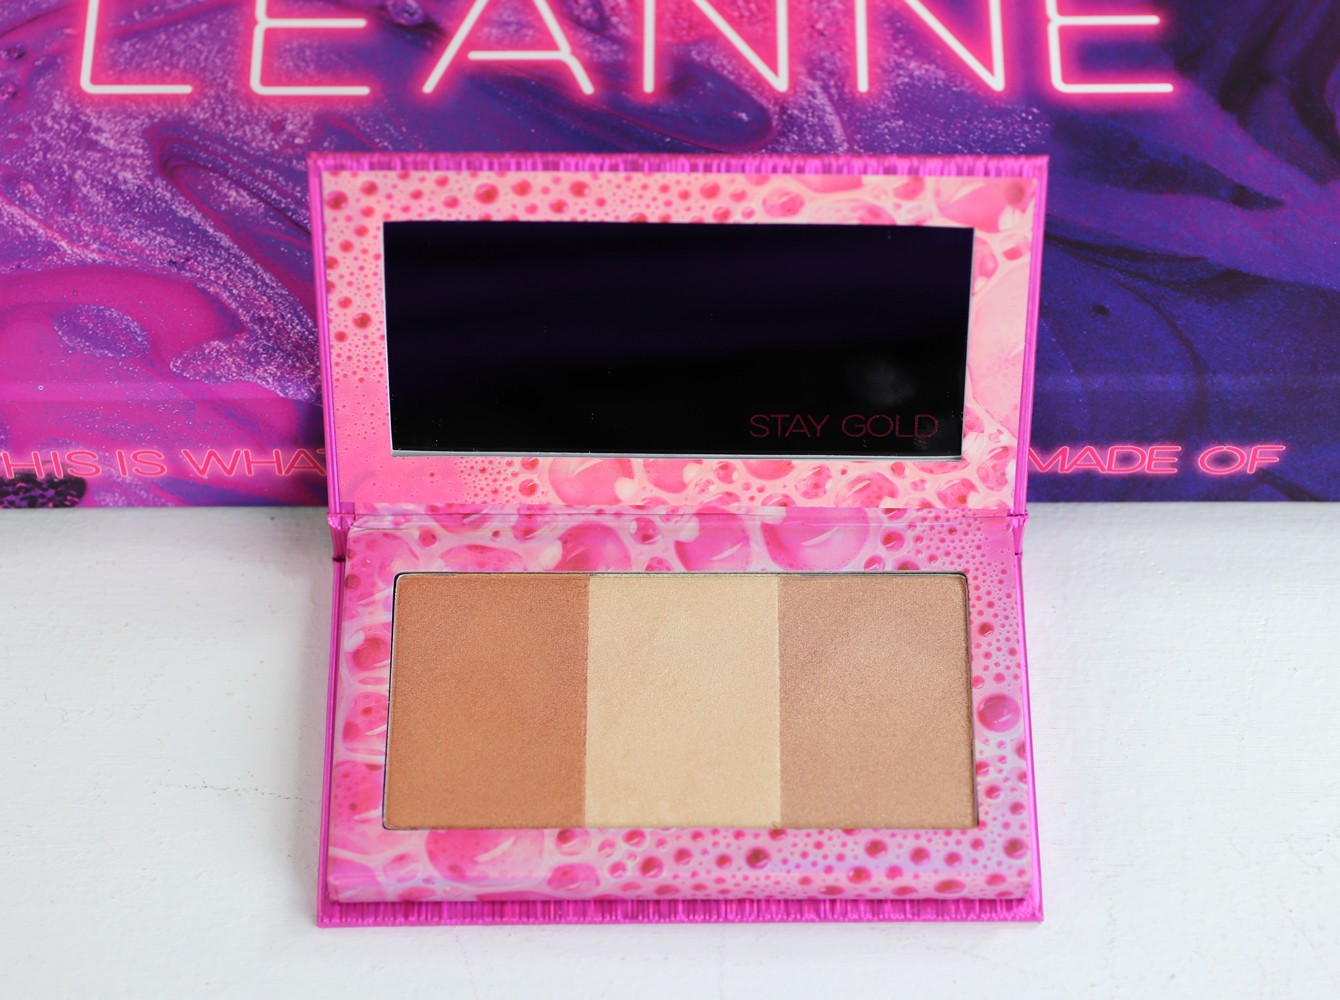 Urban Decay x Kristen Leanne Beauty Beam Highlighter Palette Review and Swatches by popular Los Angeles beauty blogger My Beauty Bunny